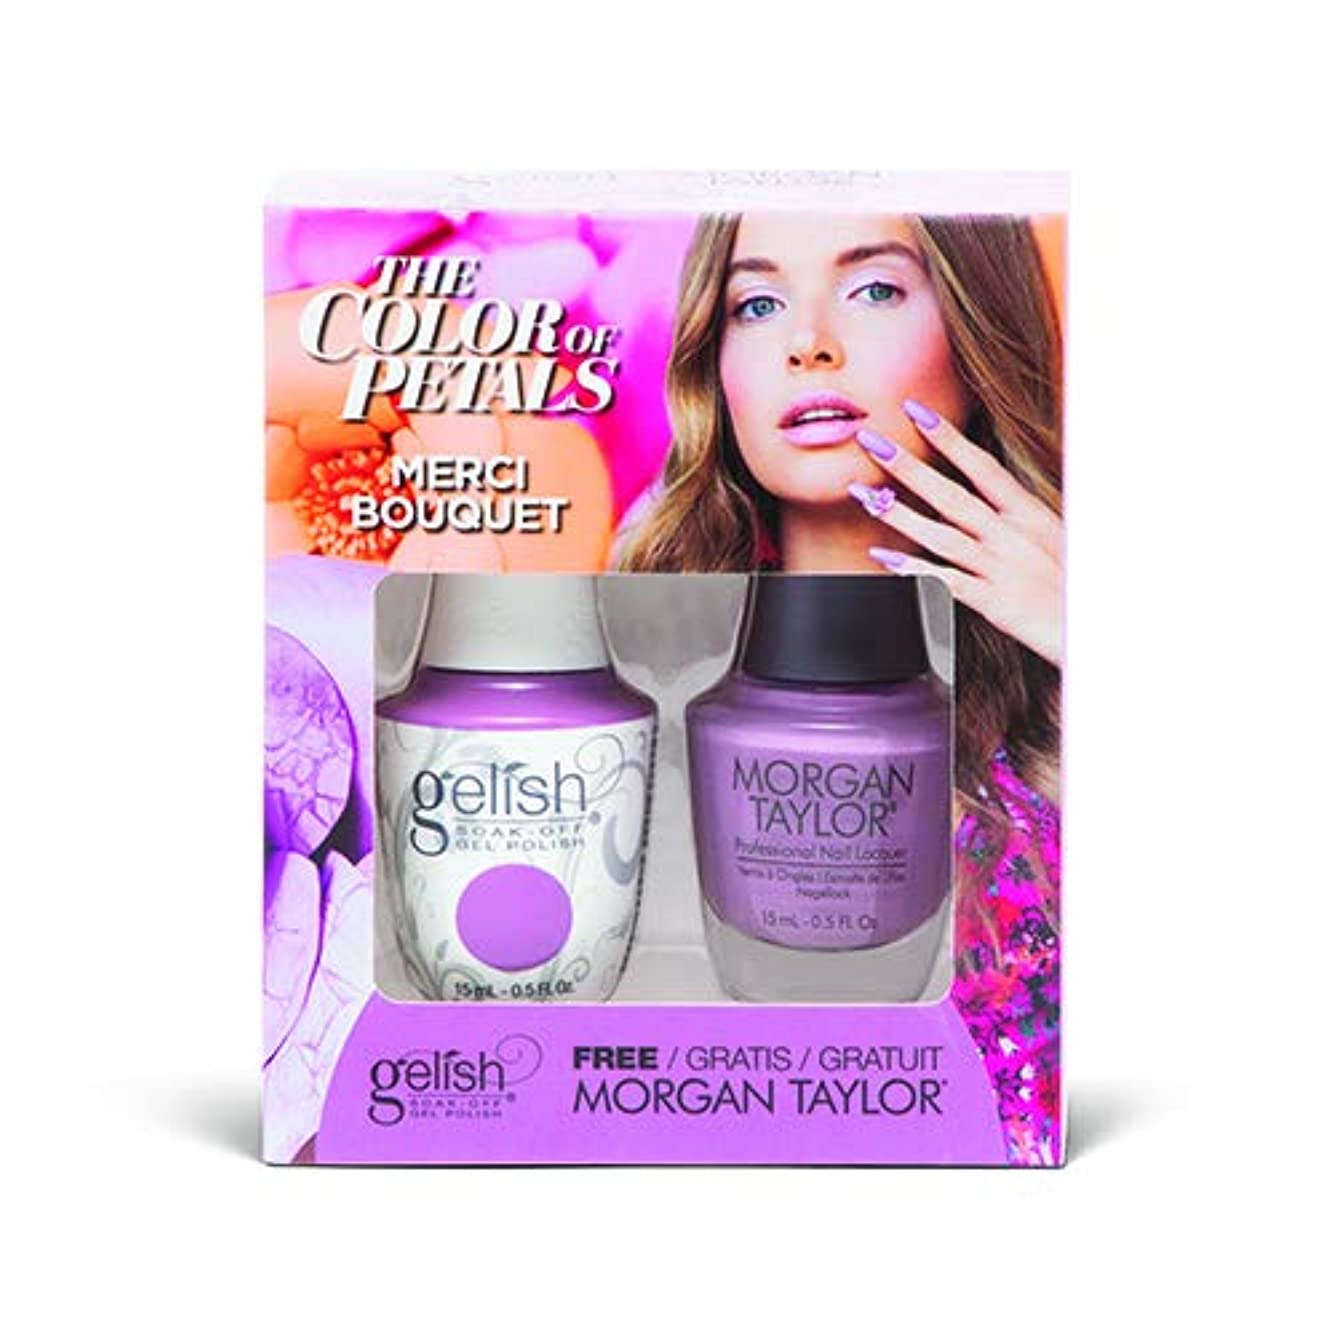 省略ジョージエリオット赤Harmony Gelish - Two Of A Kind - The Color Of Petals - Merci Bouquet - 15 mL / 0.5 Oz